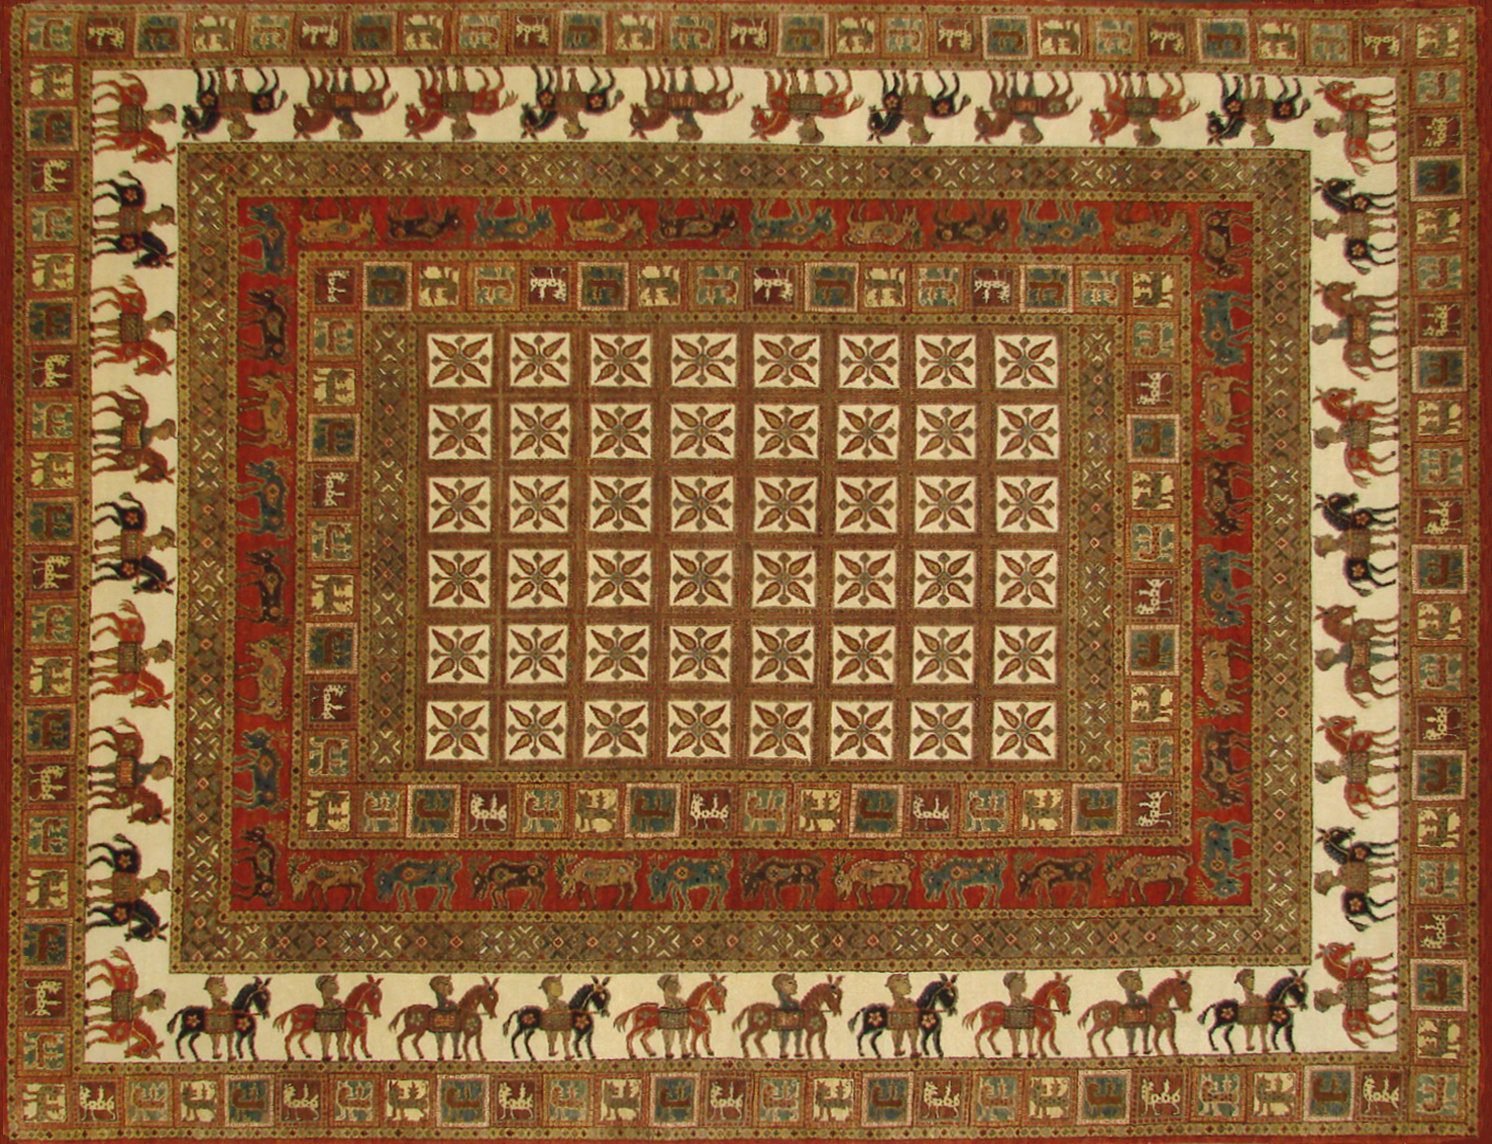 8x10 Antique Revival Hand Knotted Wool Area Rug - MR19912